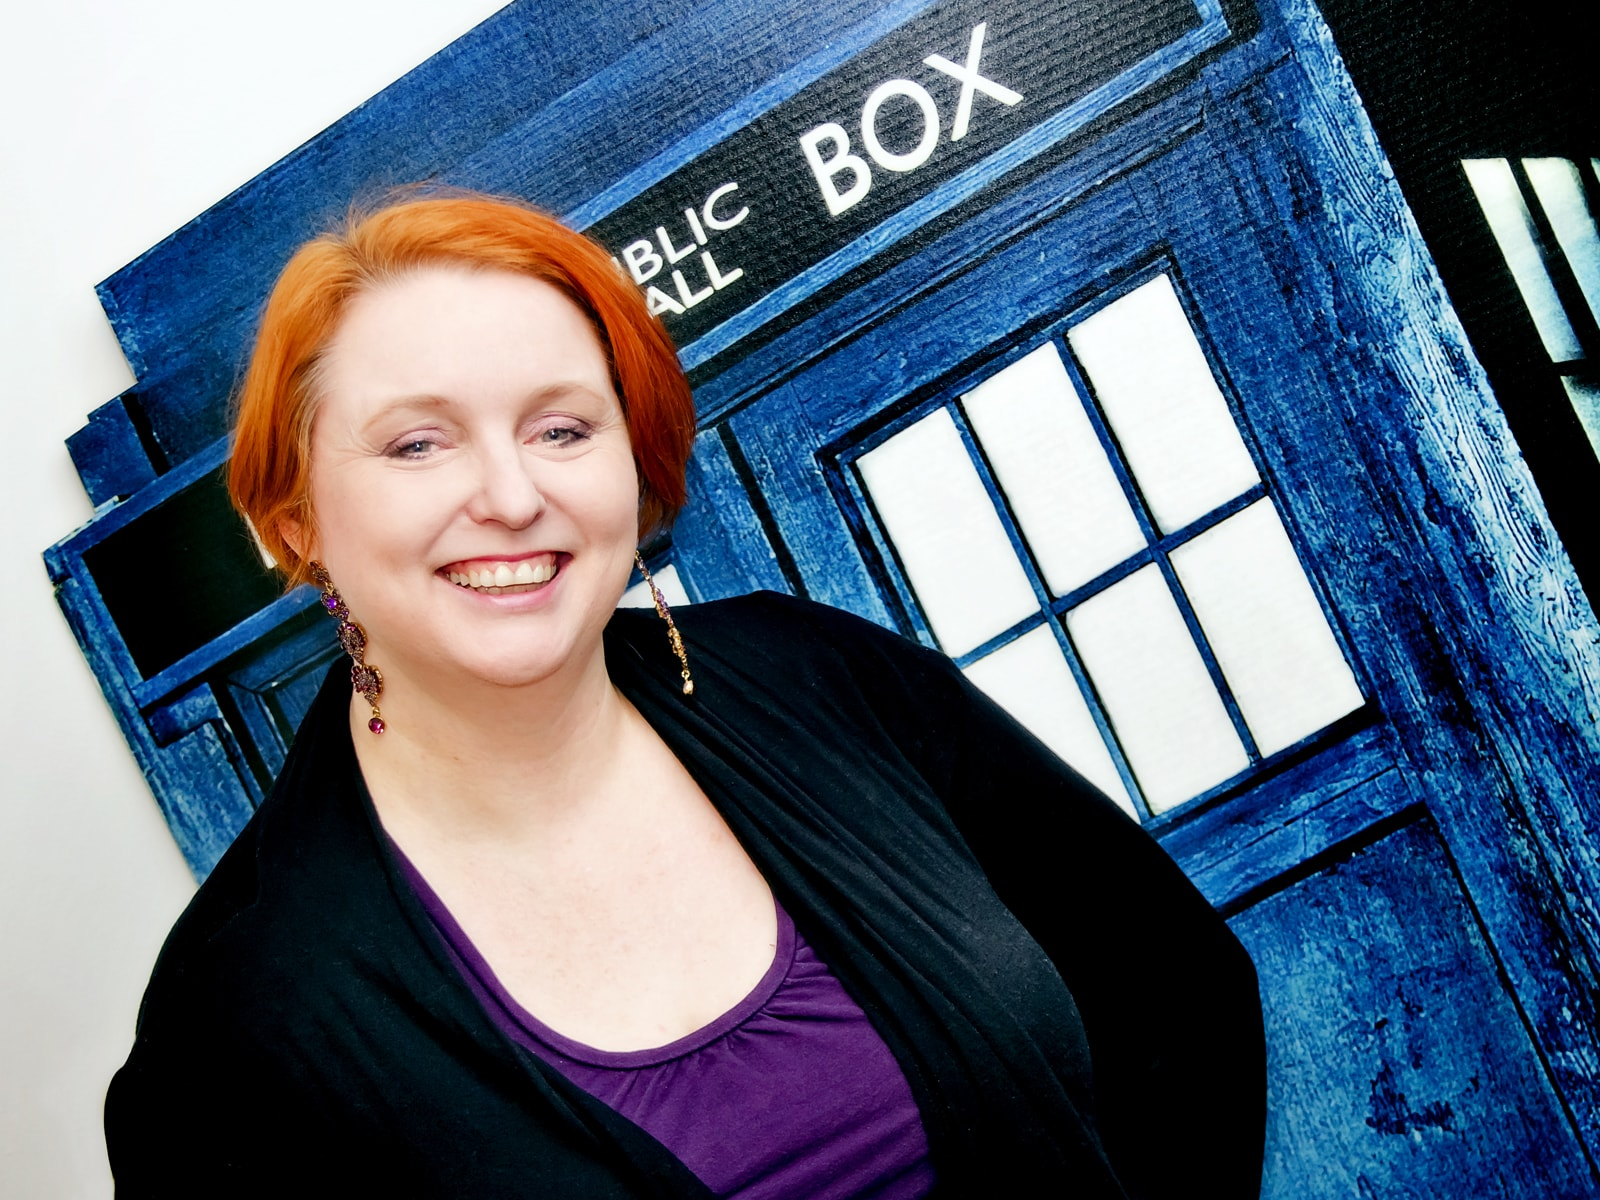 DigiPen lecturer Sonia Michaels smiling in front of the Dr. Who Tardis (a blue police box time machine) cutout in her office